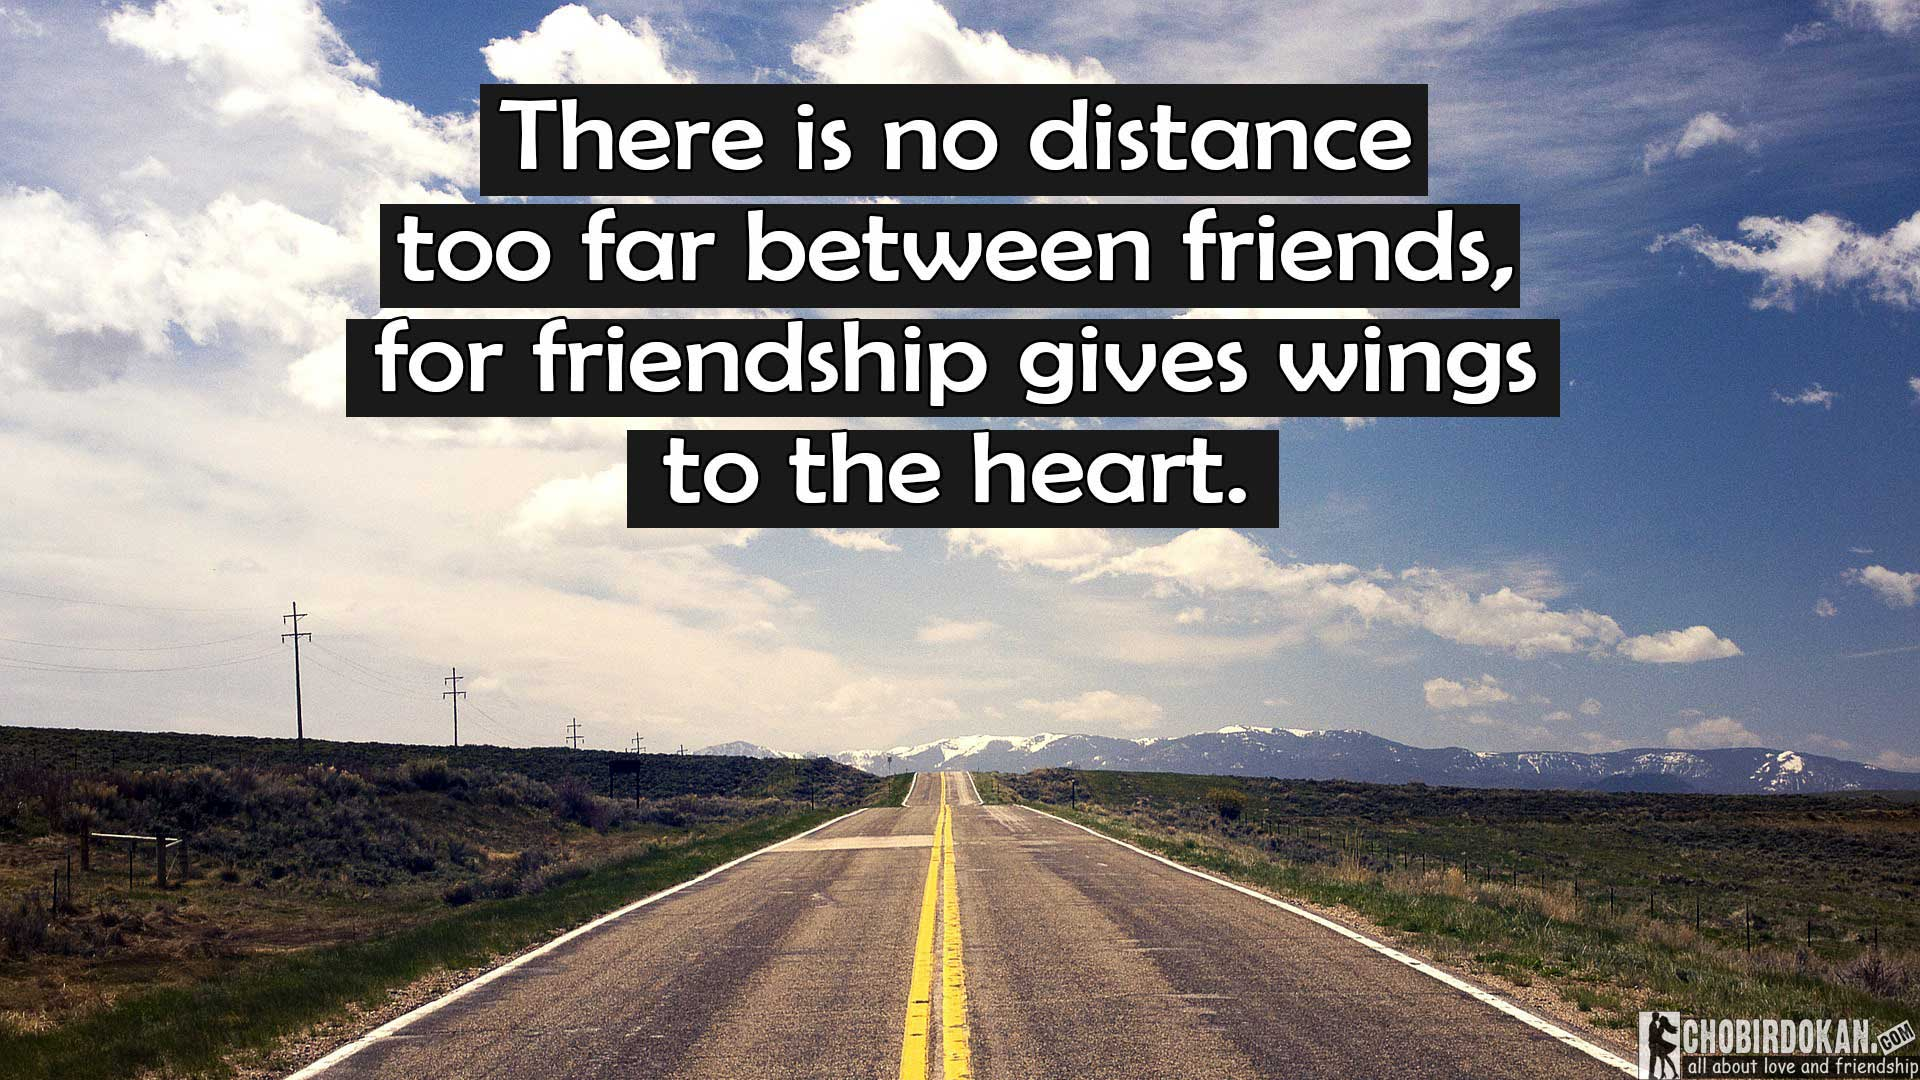 20 Long Distance Friendship Quotes Images Chobirdokan